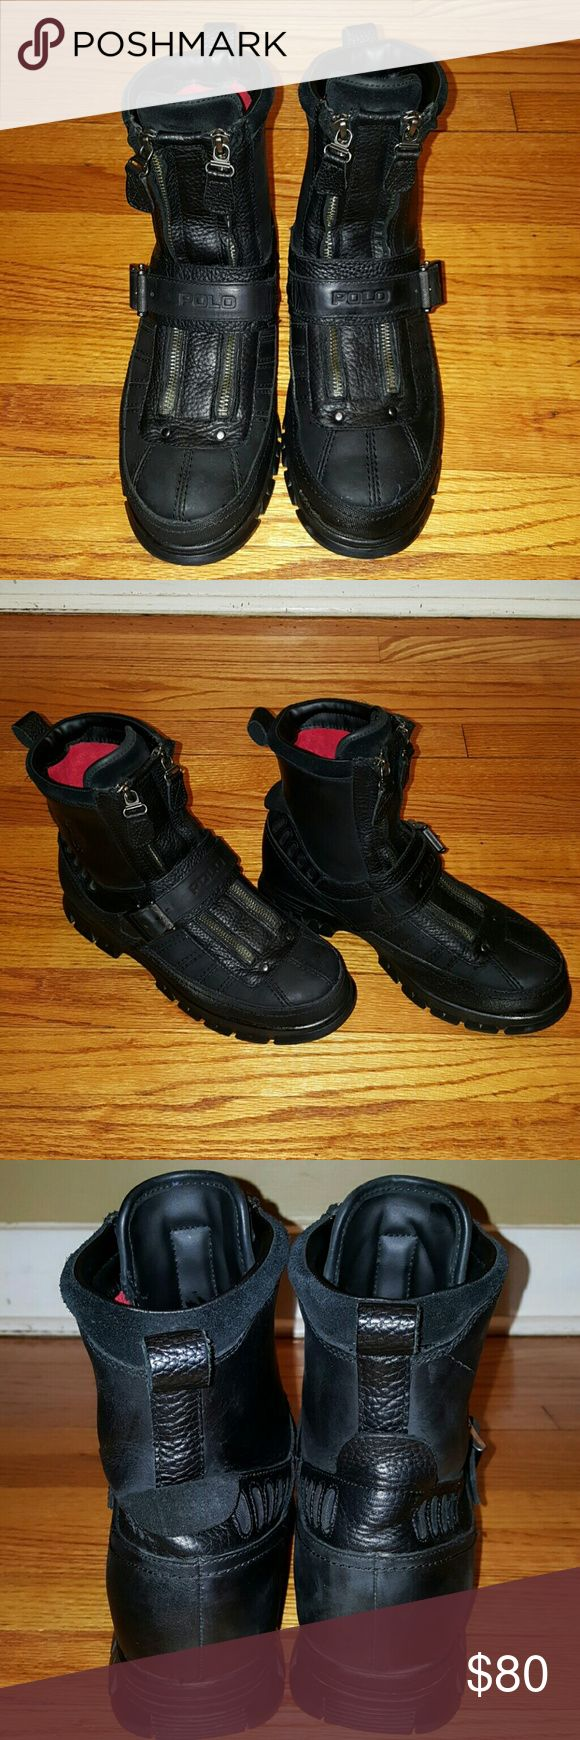 Men's Polo Ralph Lauren Kilnwick boots Men's boots leather upper, synthetic lining. Wore twice in excellant condition. These boots are no longer available through Ralph Lauren website nor Macy's. Polo by Ralph Lauren Shoes Boots